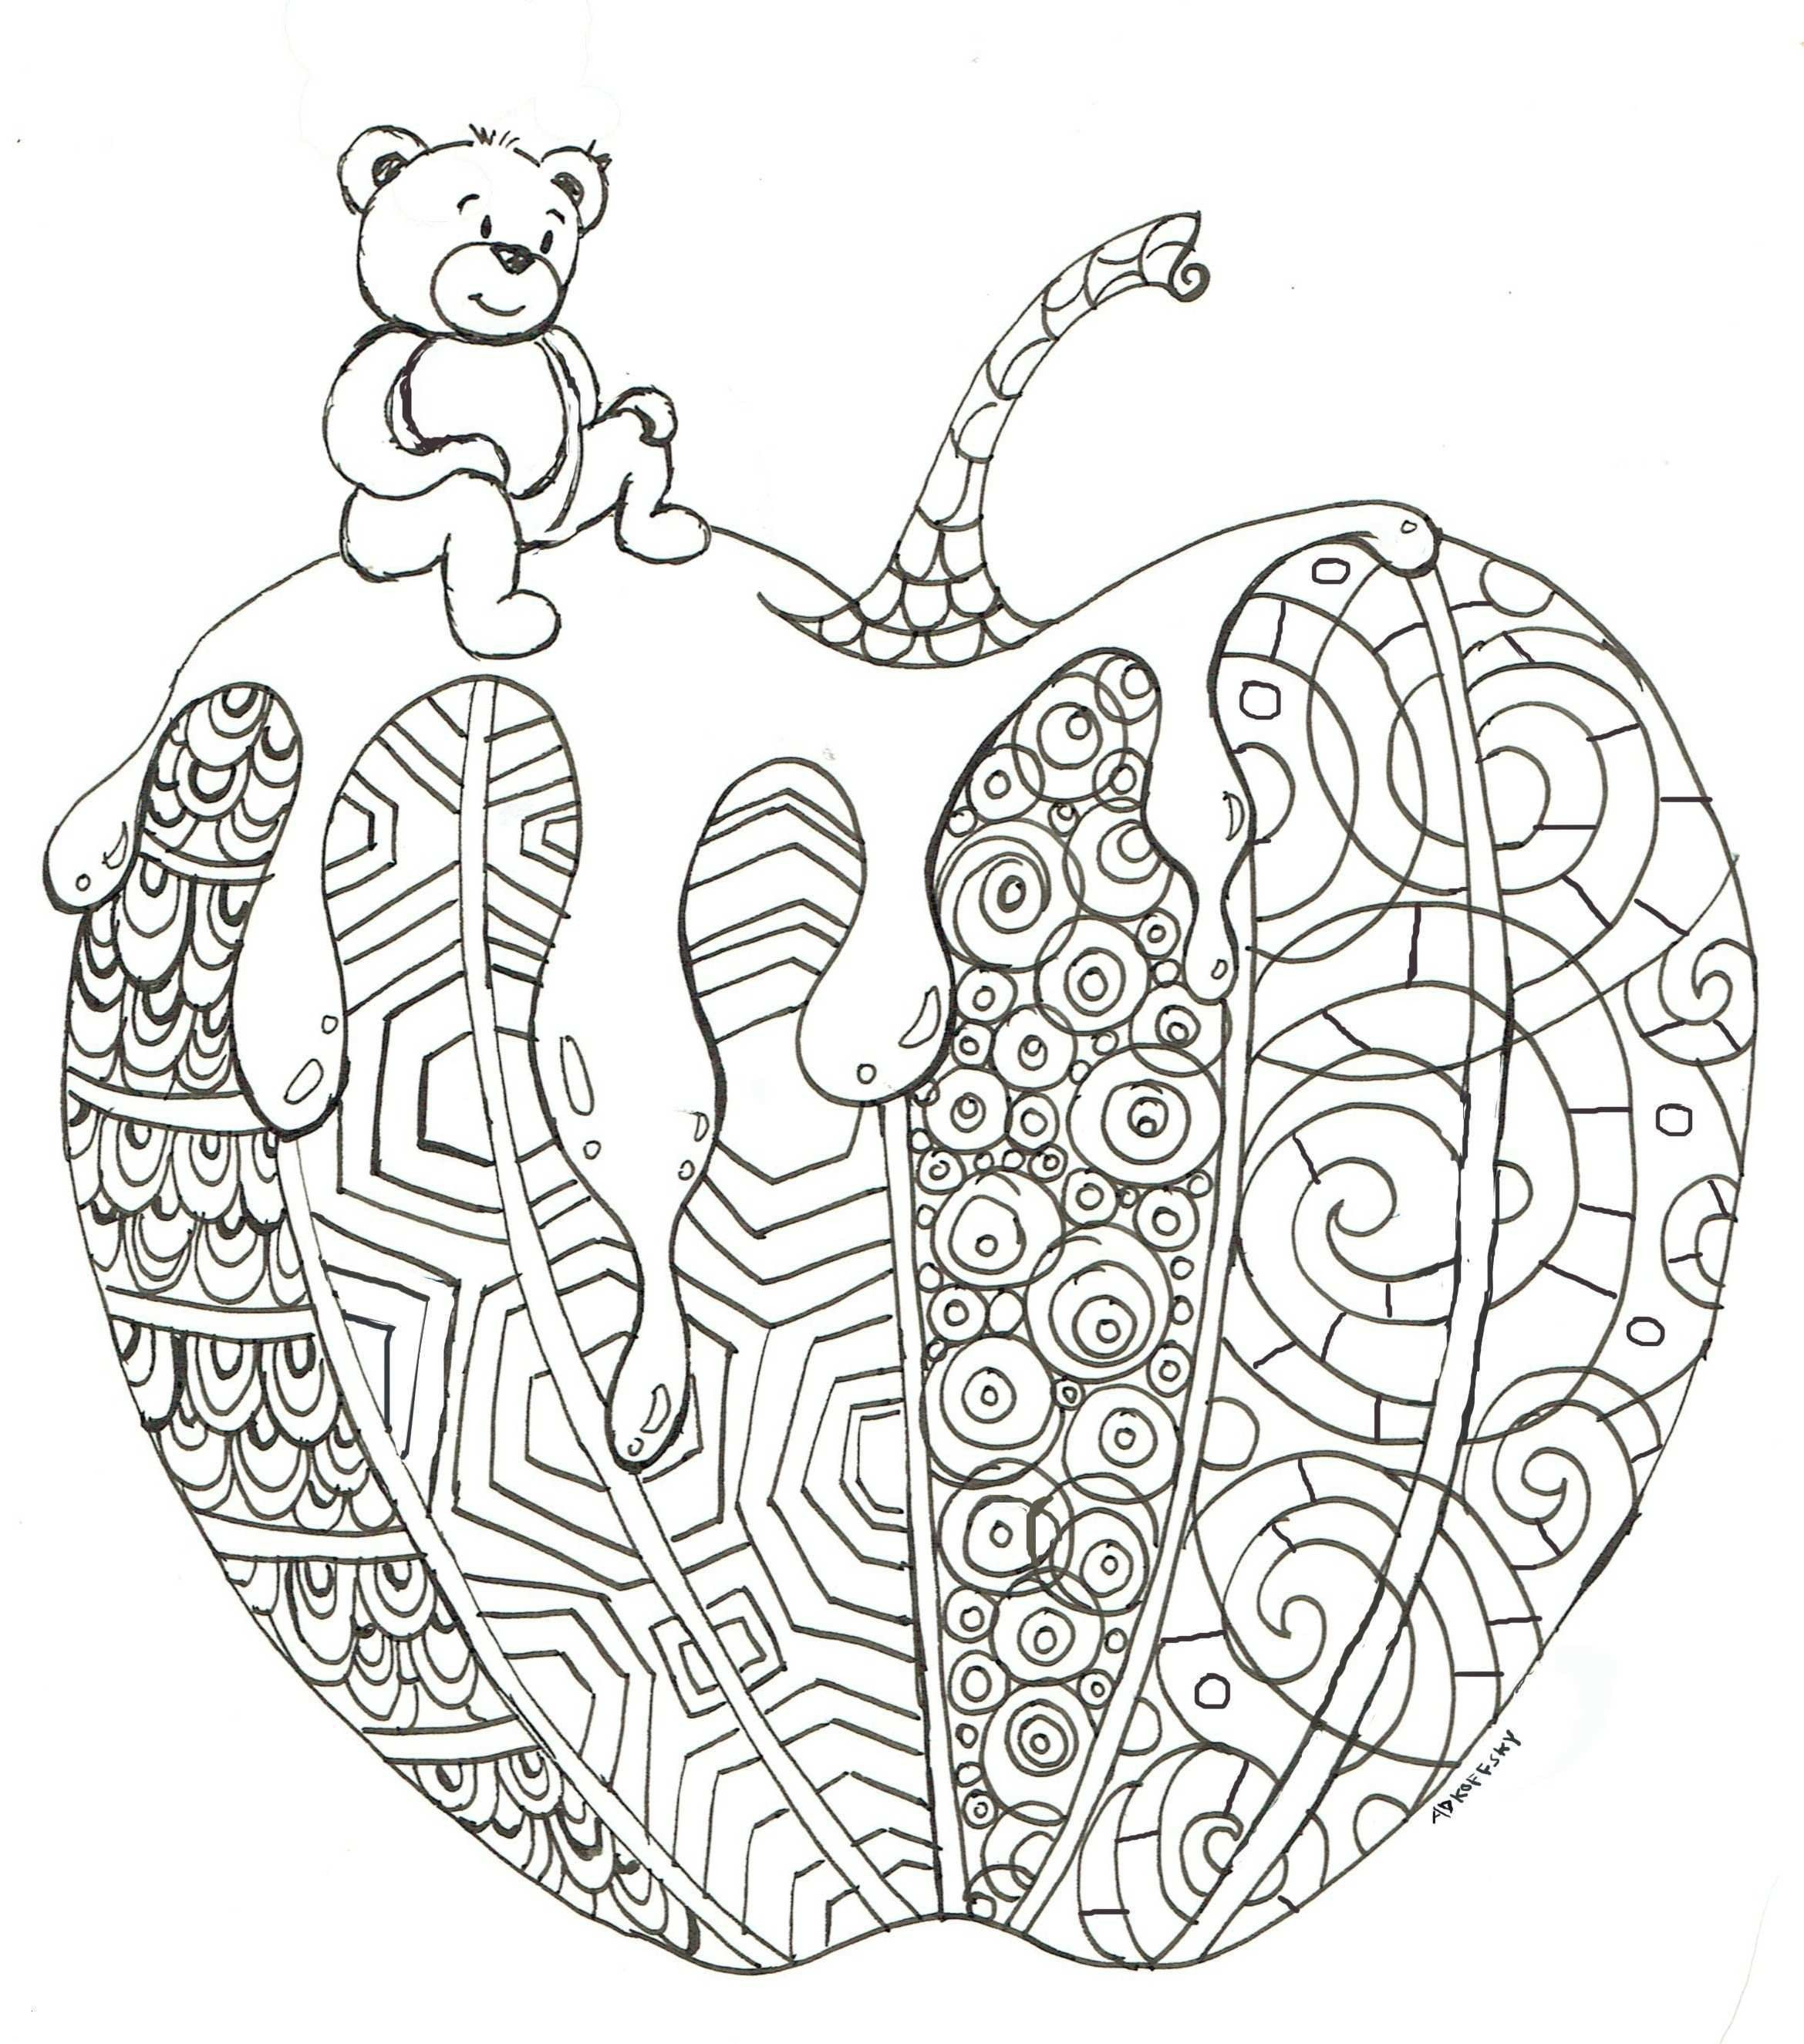 Rosh Hashanah Coloring Pages Beautiful Rosh Hashanah Coloring Pages Elegant Jewish Coloring Pages Apple Coloring Pages Rosh Hashanah Crafts Rosh Hashana Crafts